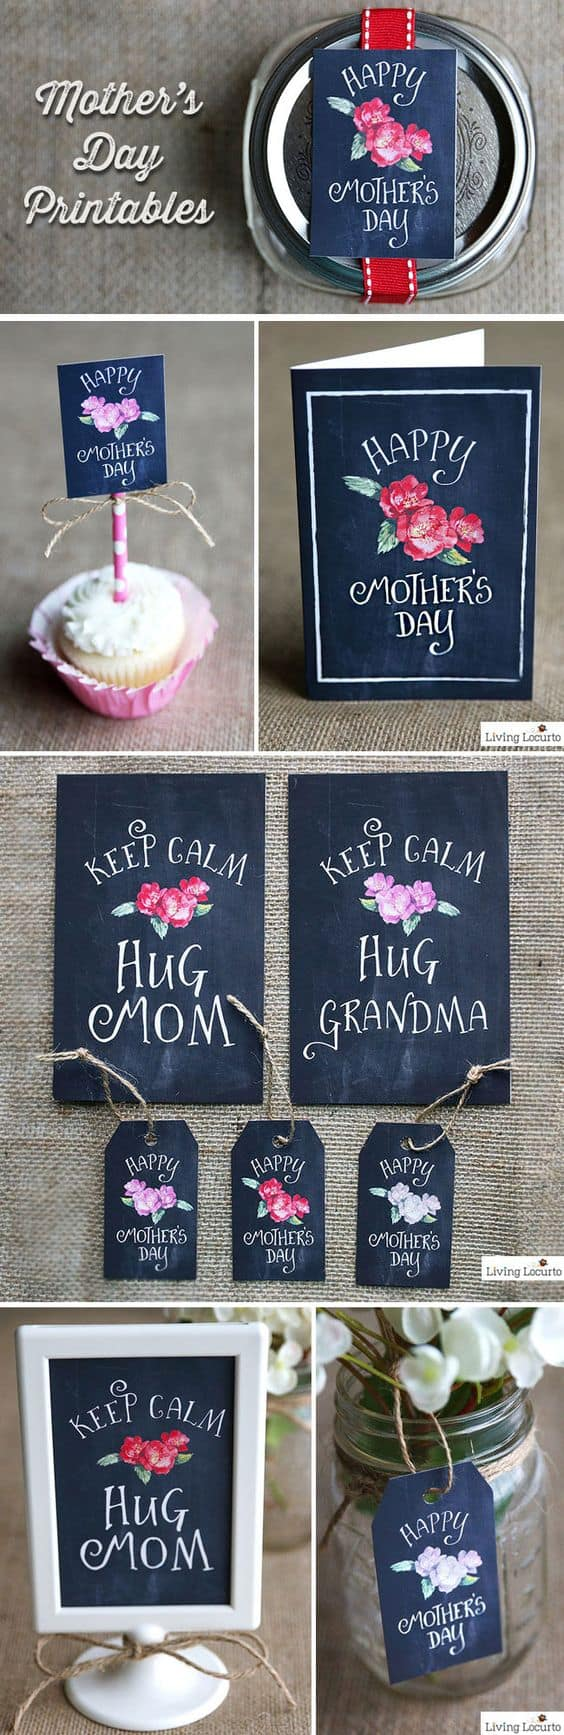 Mother's Day Printables. shabbymintchicparty.com